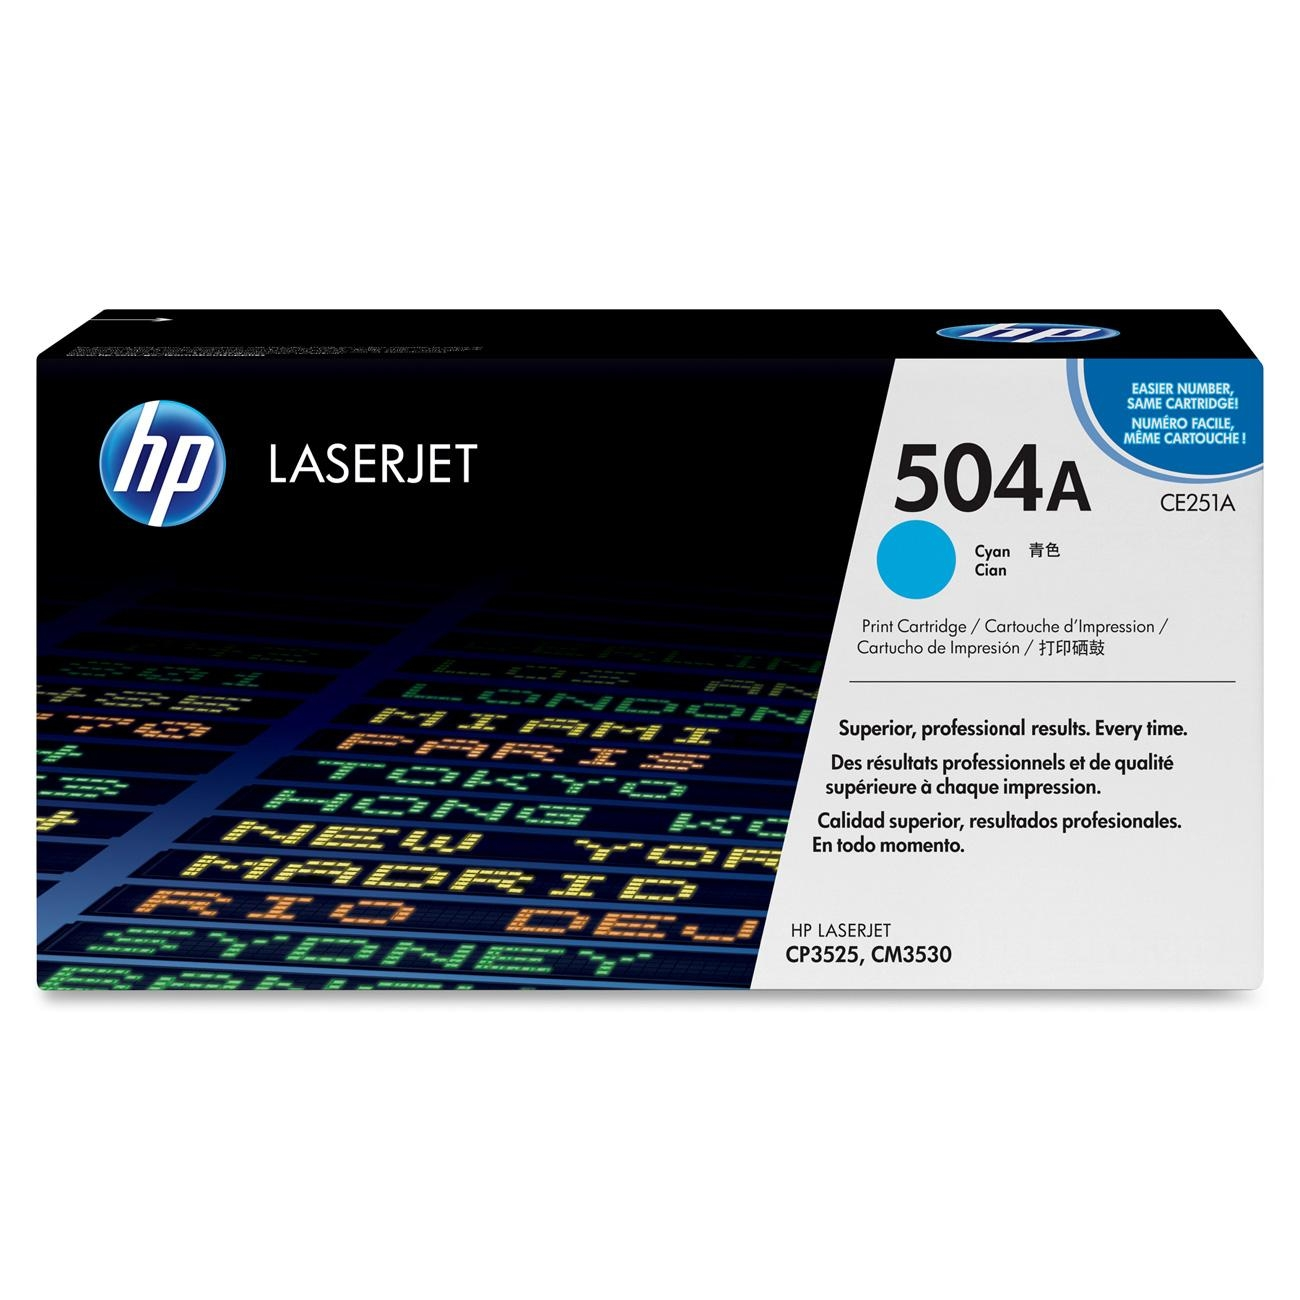 HP 504A Cyan Toner Cartridge, CE251A